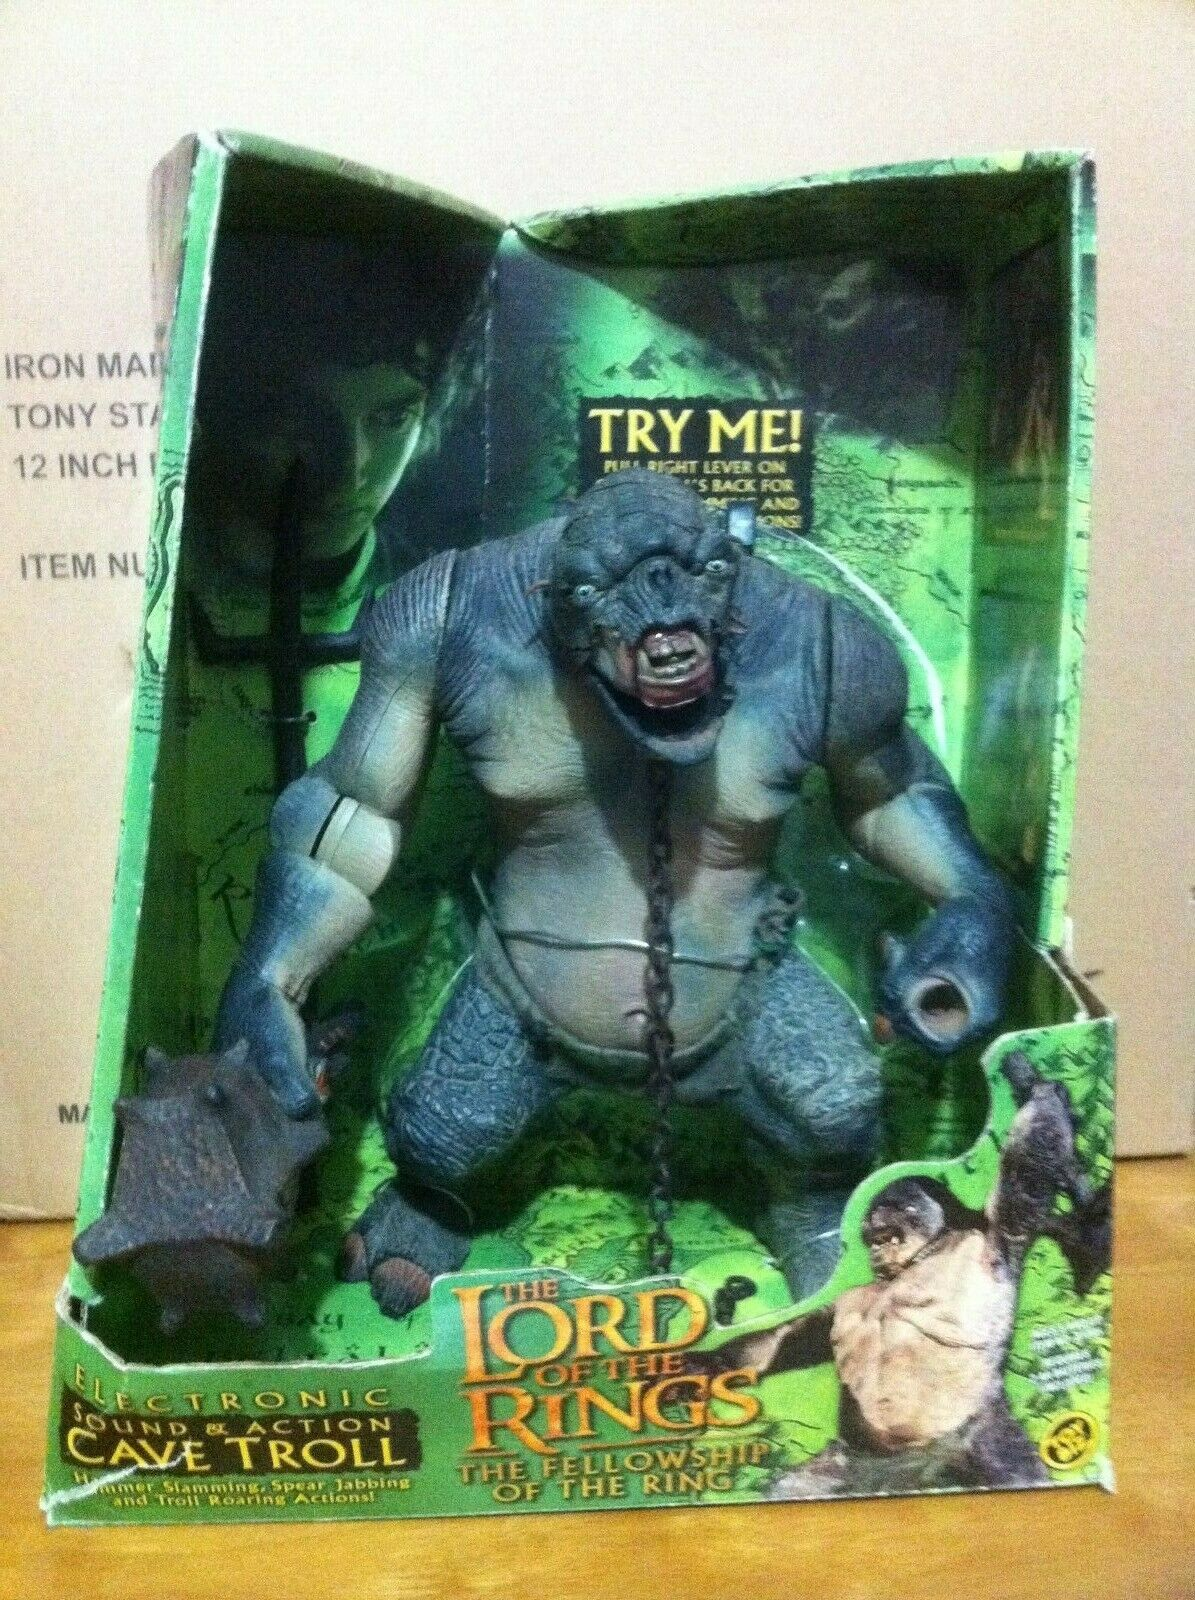 Electronic Sound & Action Cave Troll - Toy Biz - (Face with battle damage )  )